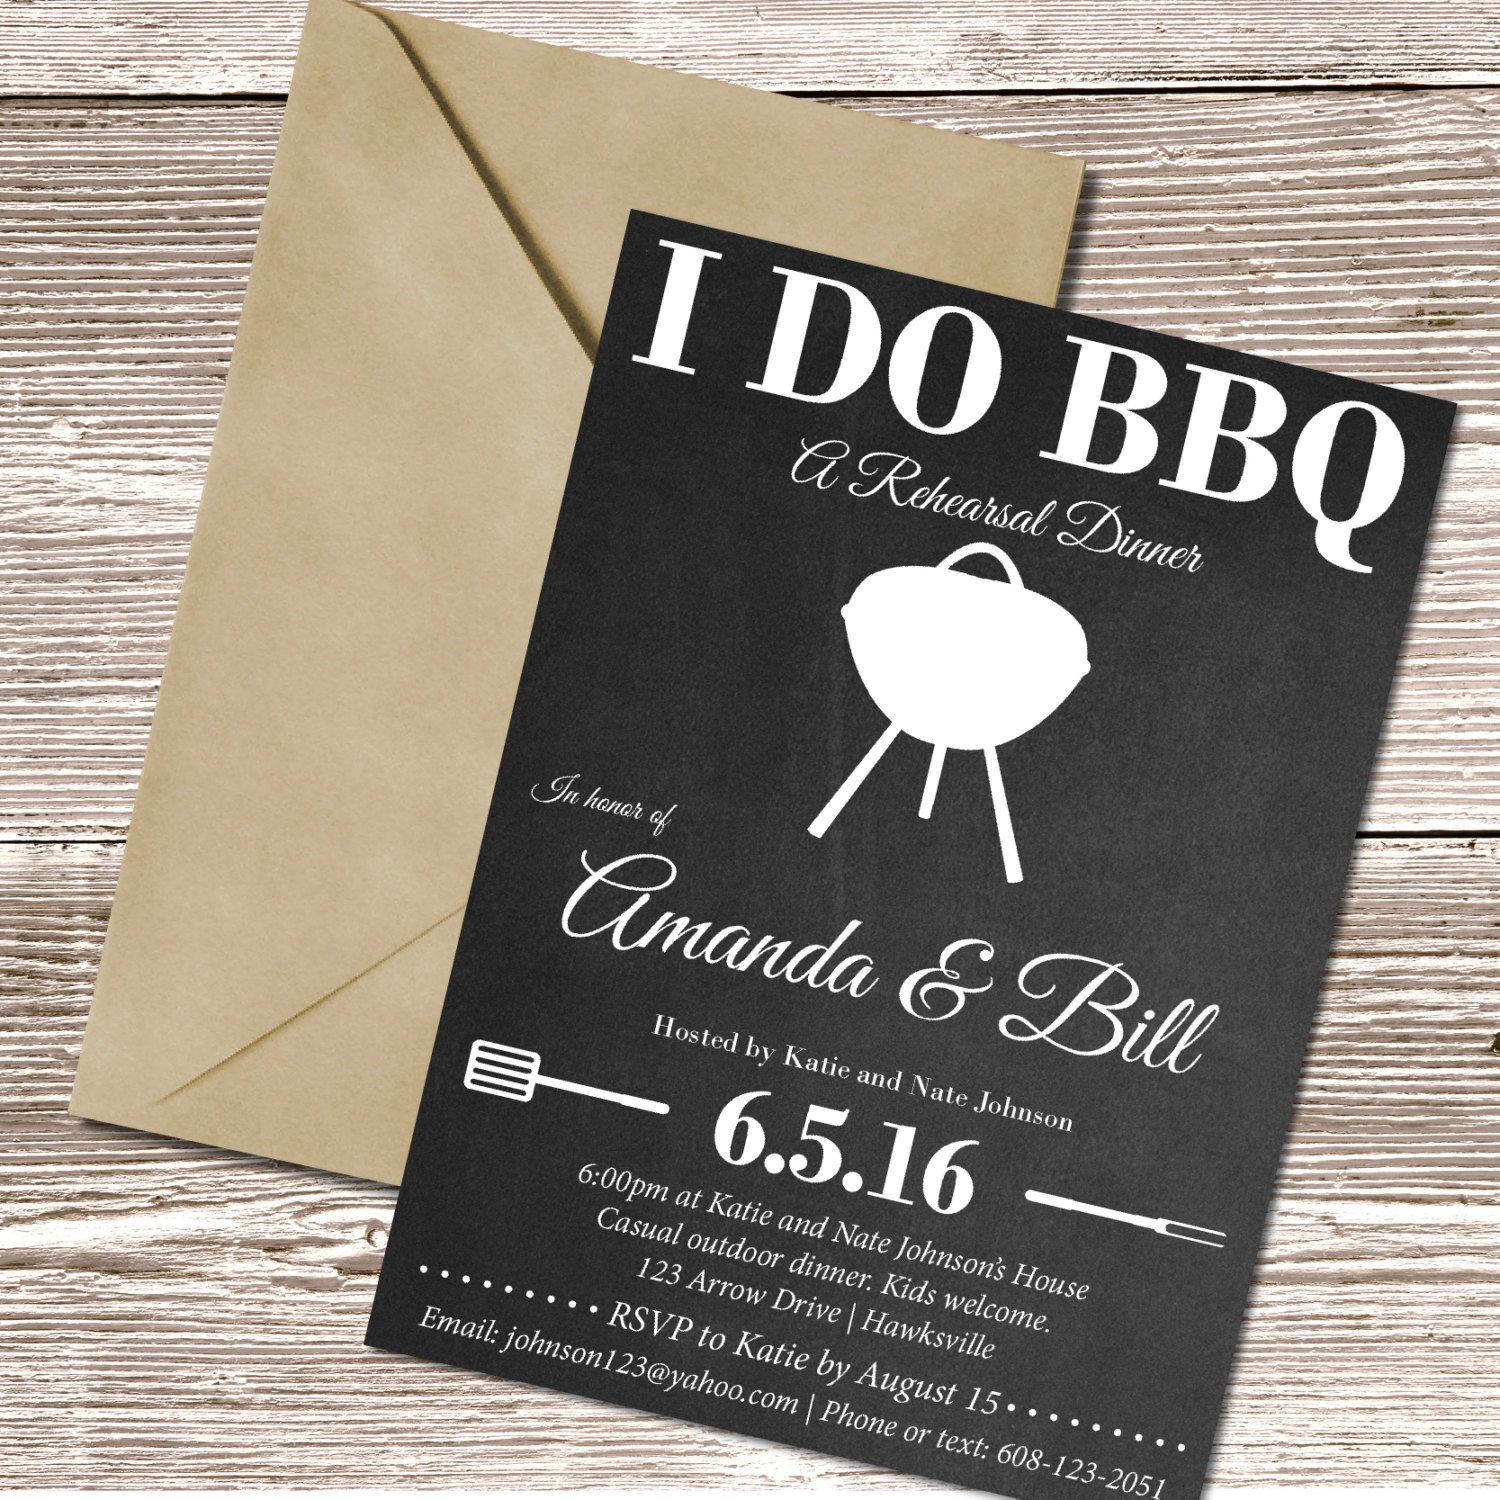 I DO BBQ Rehearsal Dinner Invite